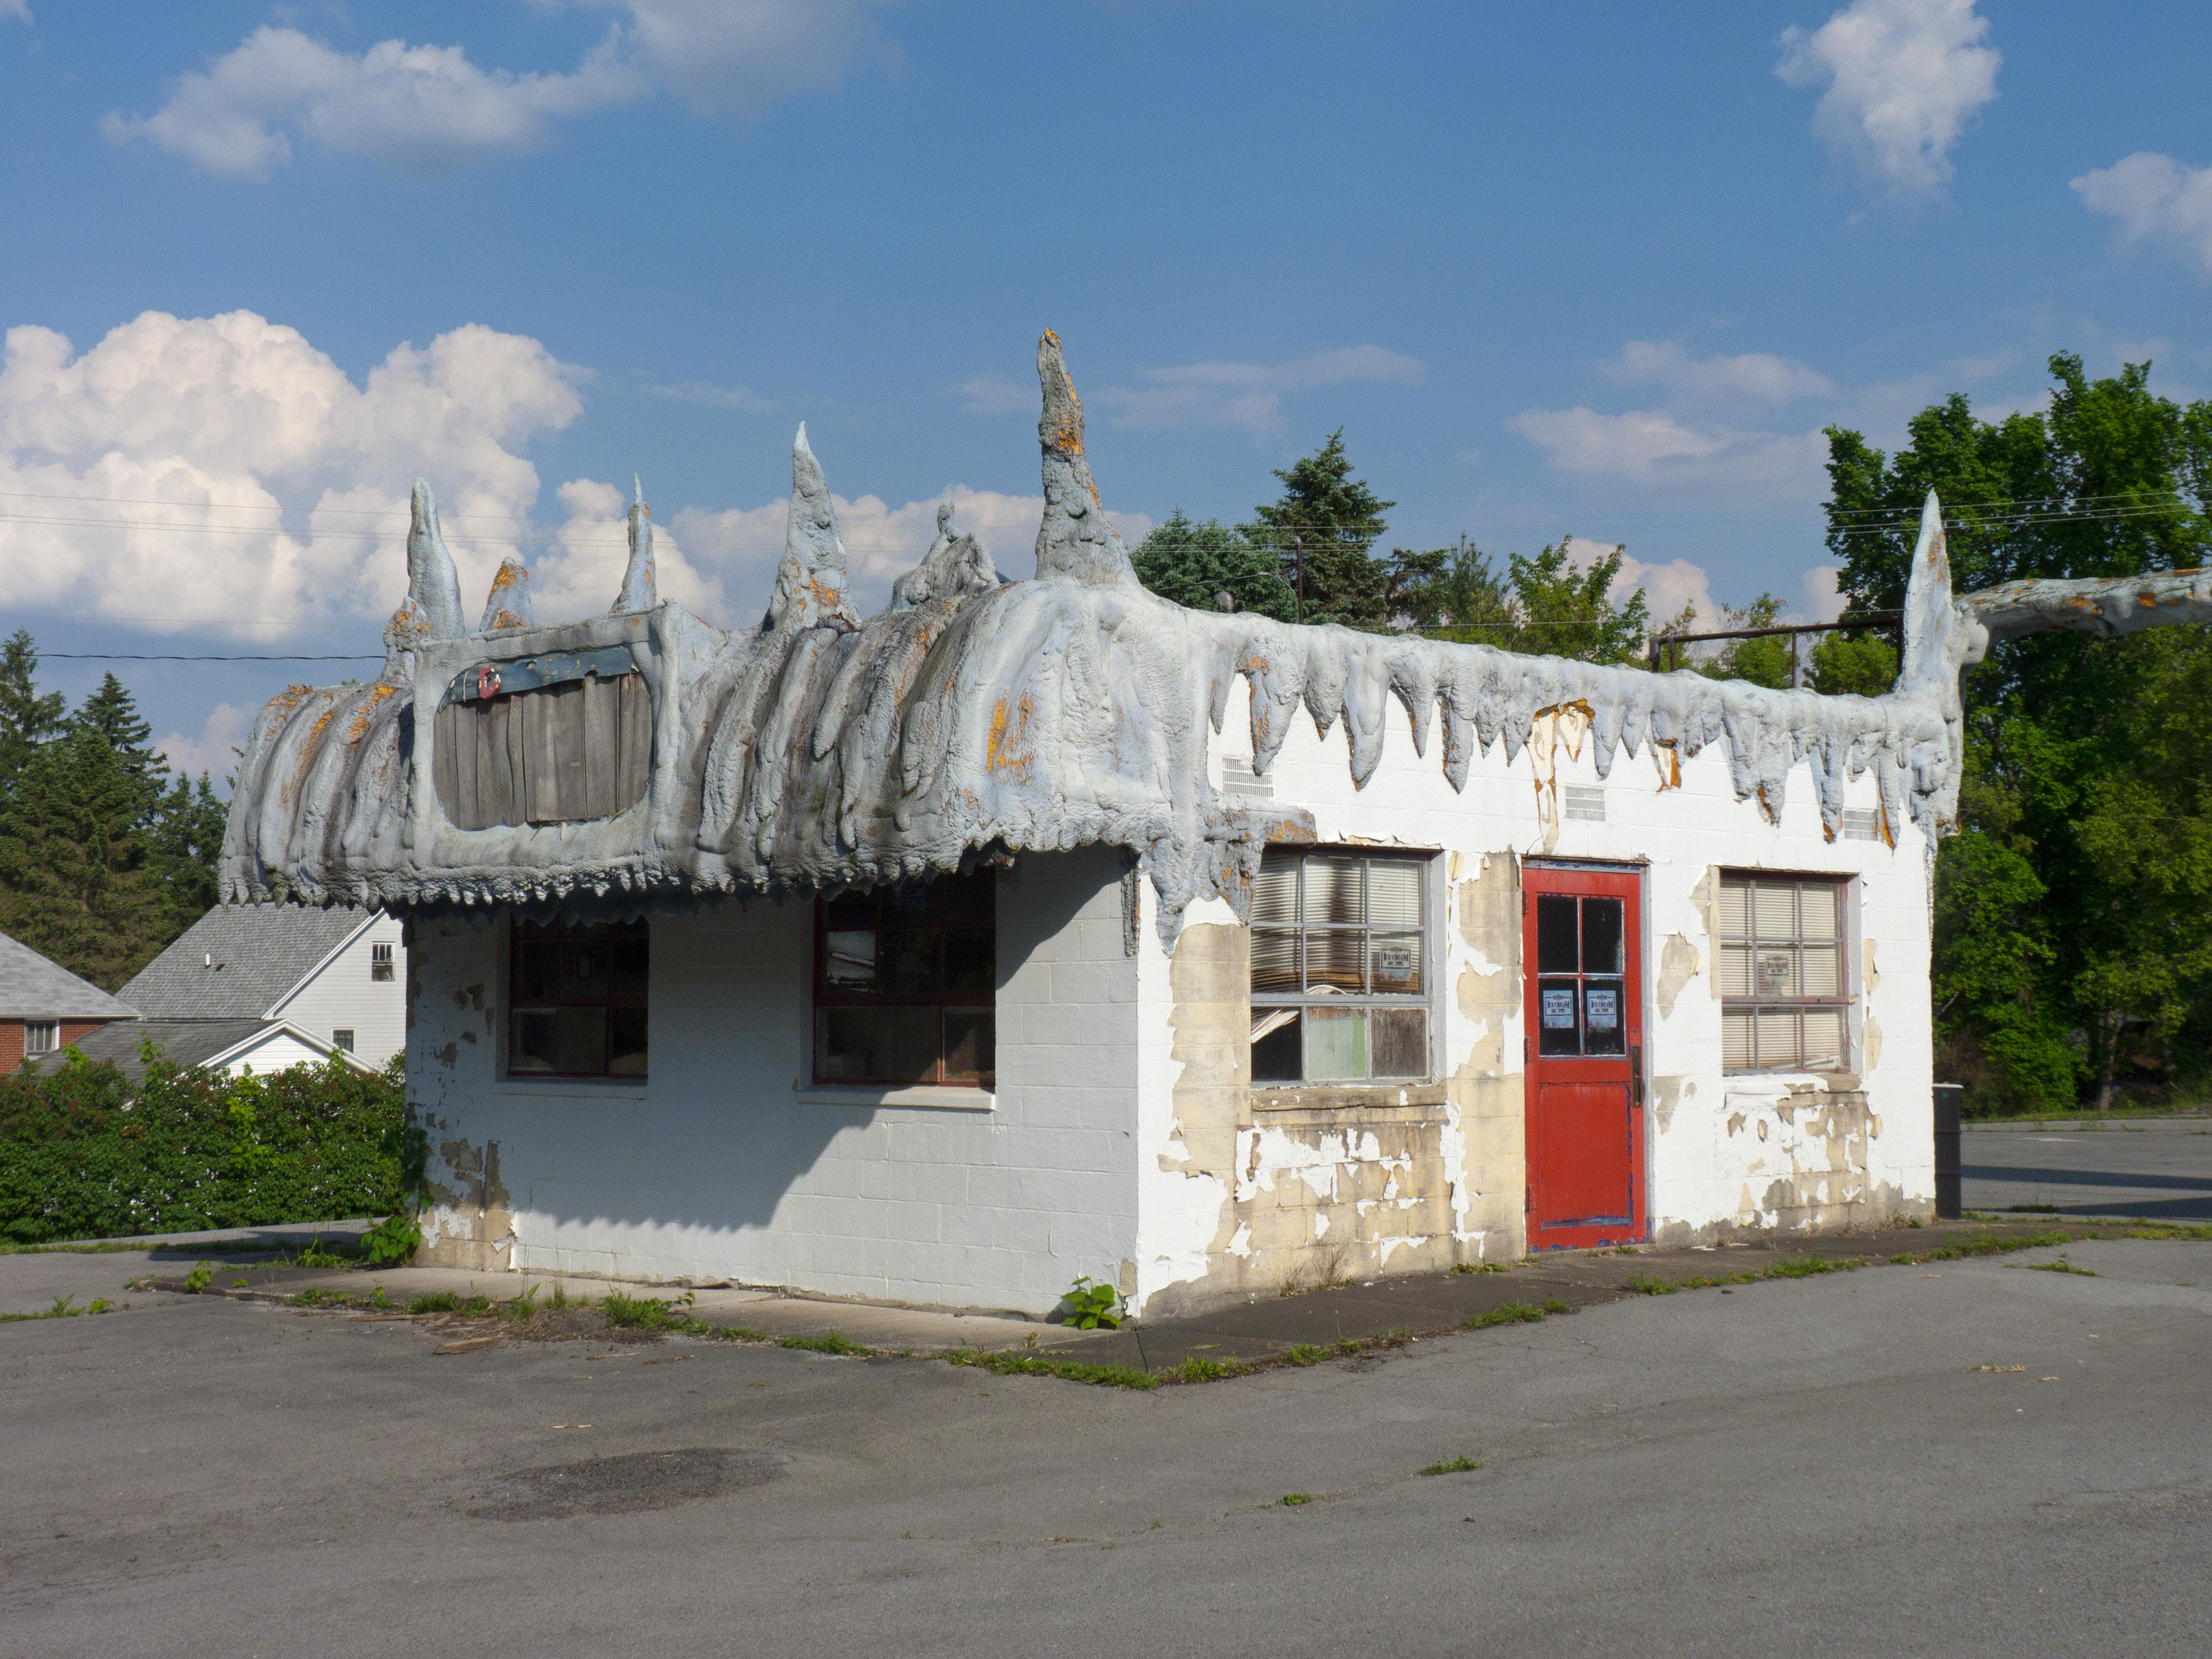 Abandoned ice cream stand situated next to shuttered Holgate Toy Company complex - Kane, Pennsylvania U.S.A. - June 1, 2016